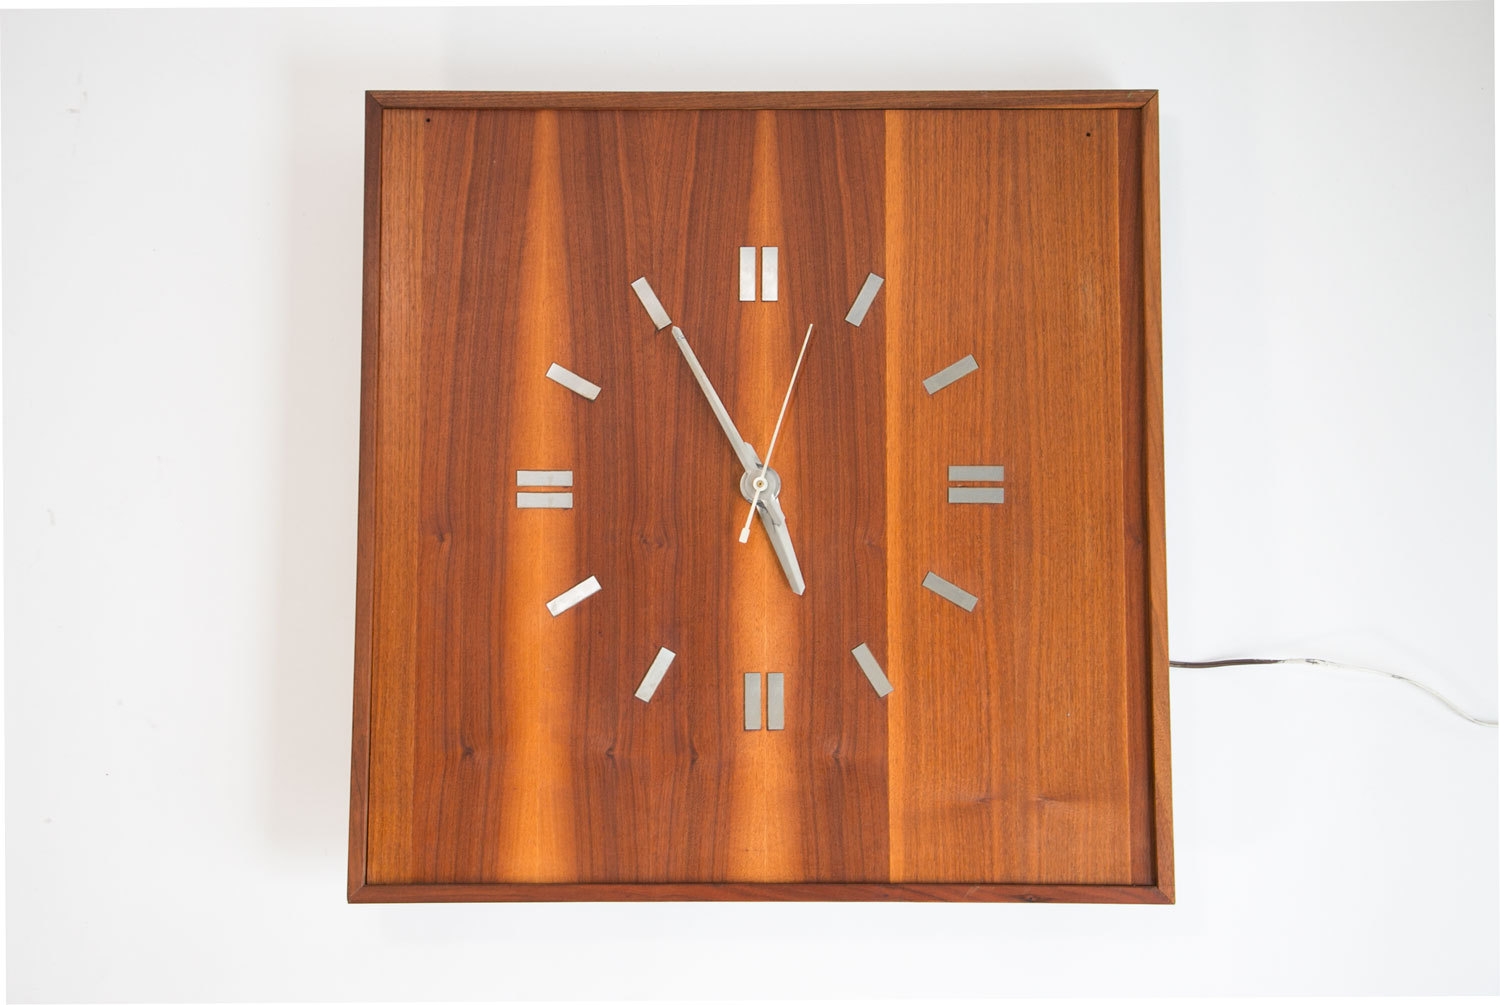 Vintage 1960's Mid Century Modern Large Black Walnut Wall Clock // Custom Made, One of a Kind // MCM // Modernist